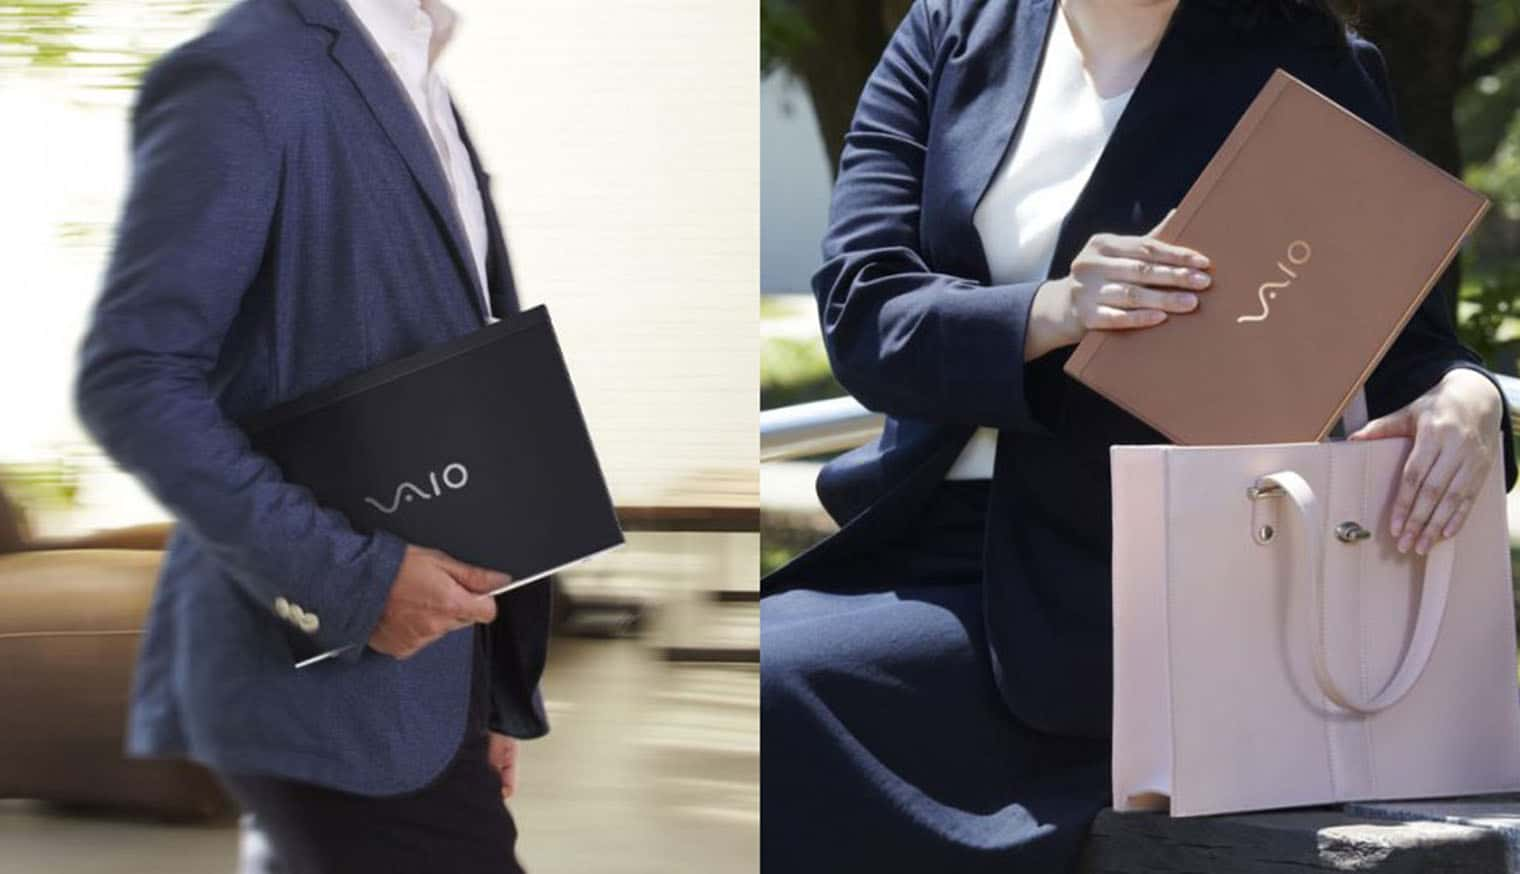 sony introduced 12.5-inch vaio sx12 and vaio pro pj